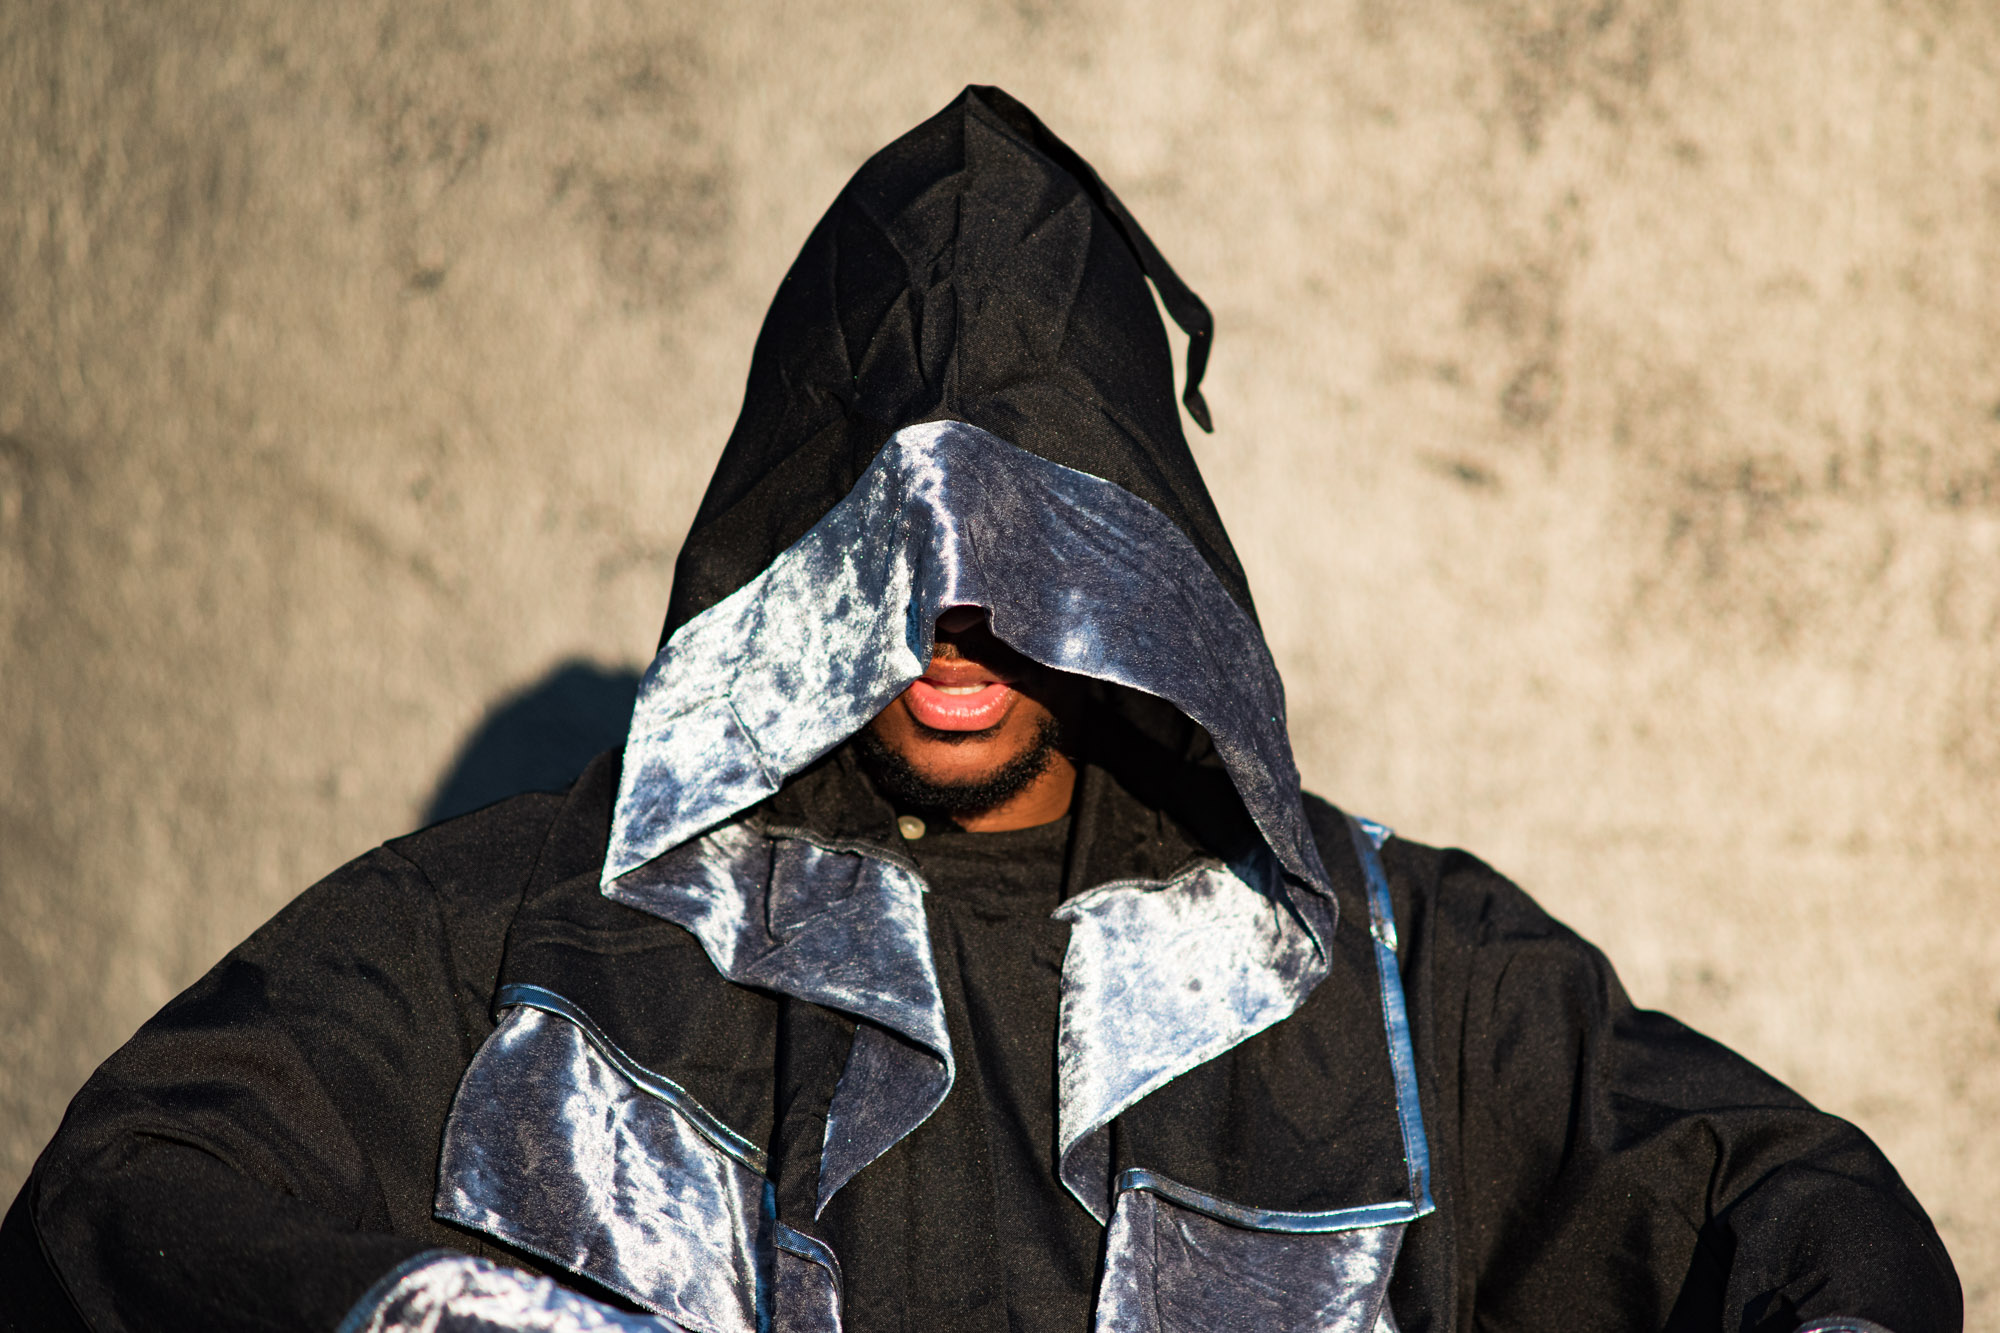 an artist wearing a shiny silver wizard suit against a stone colored backdrop